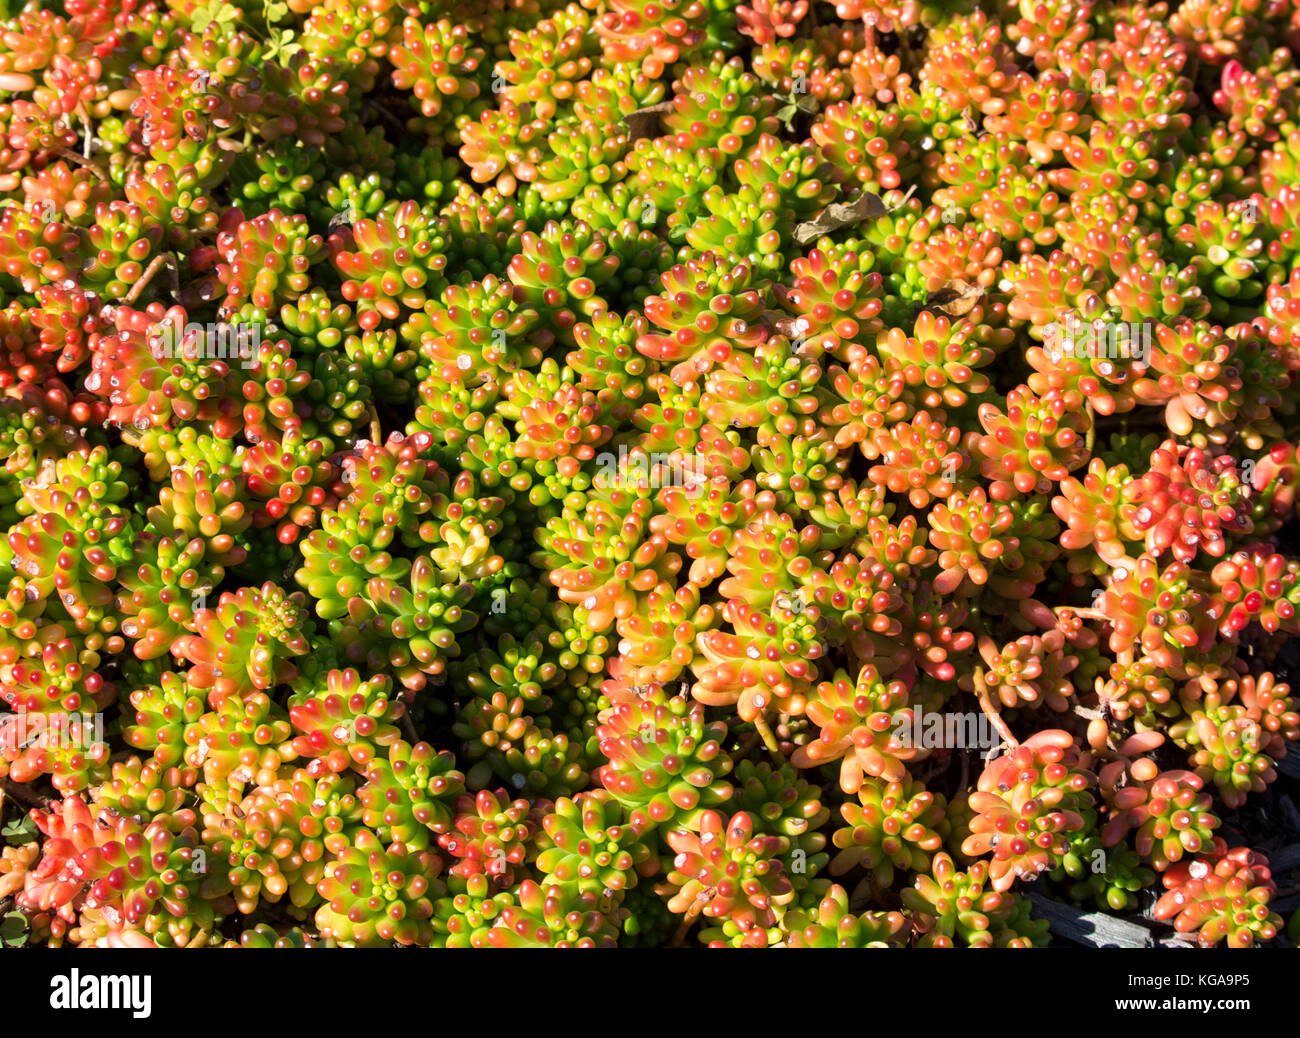 Ground cover succulents stock photos ground cover succulents stock succulents with thick skin protective coating seals in moisture and minimizes evaporation create delightful textured mightylinksfo